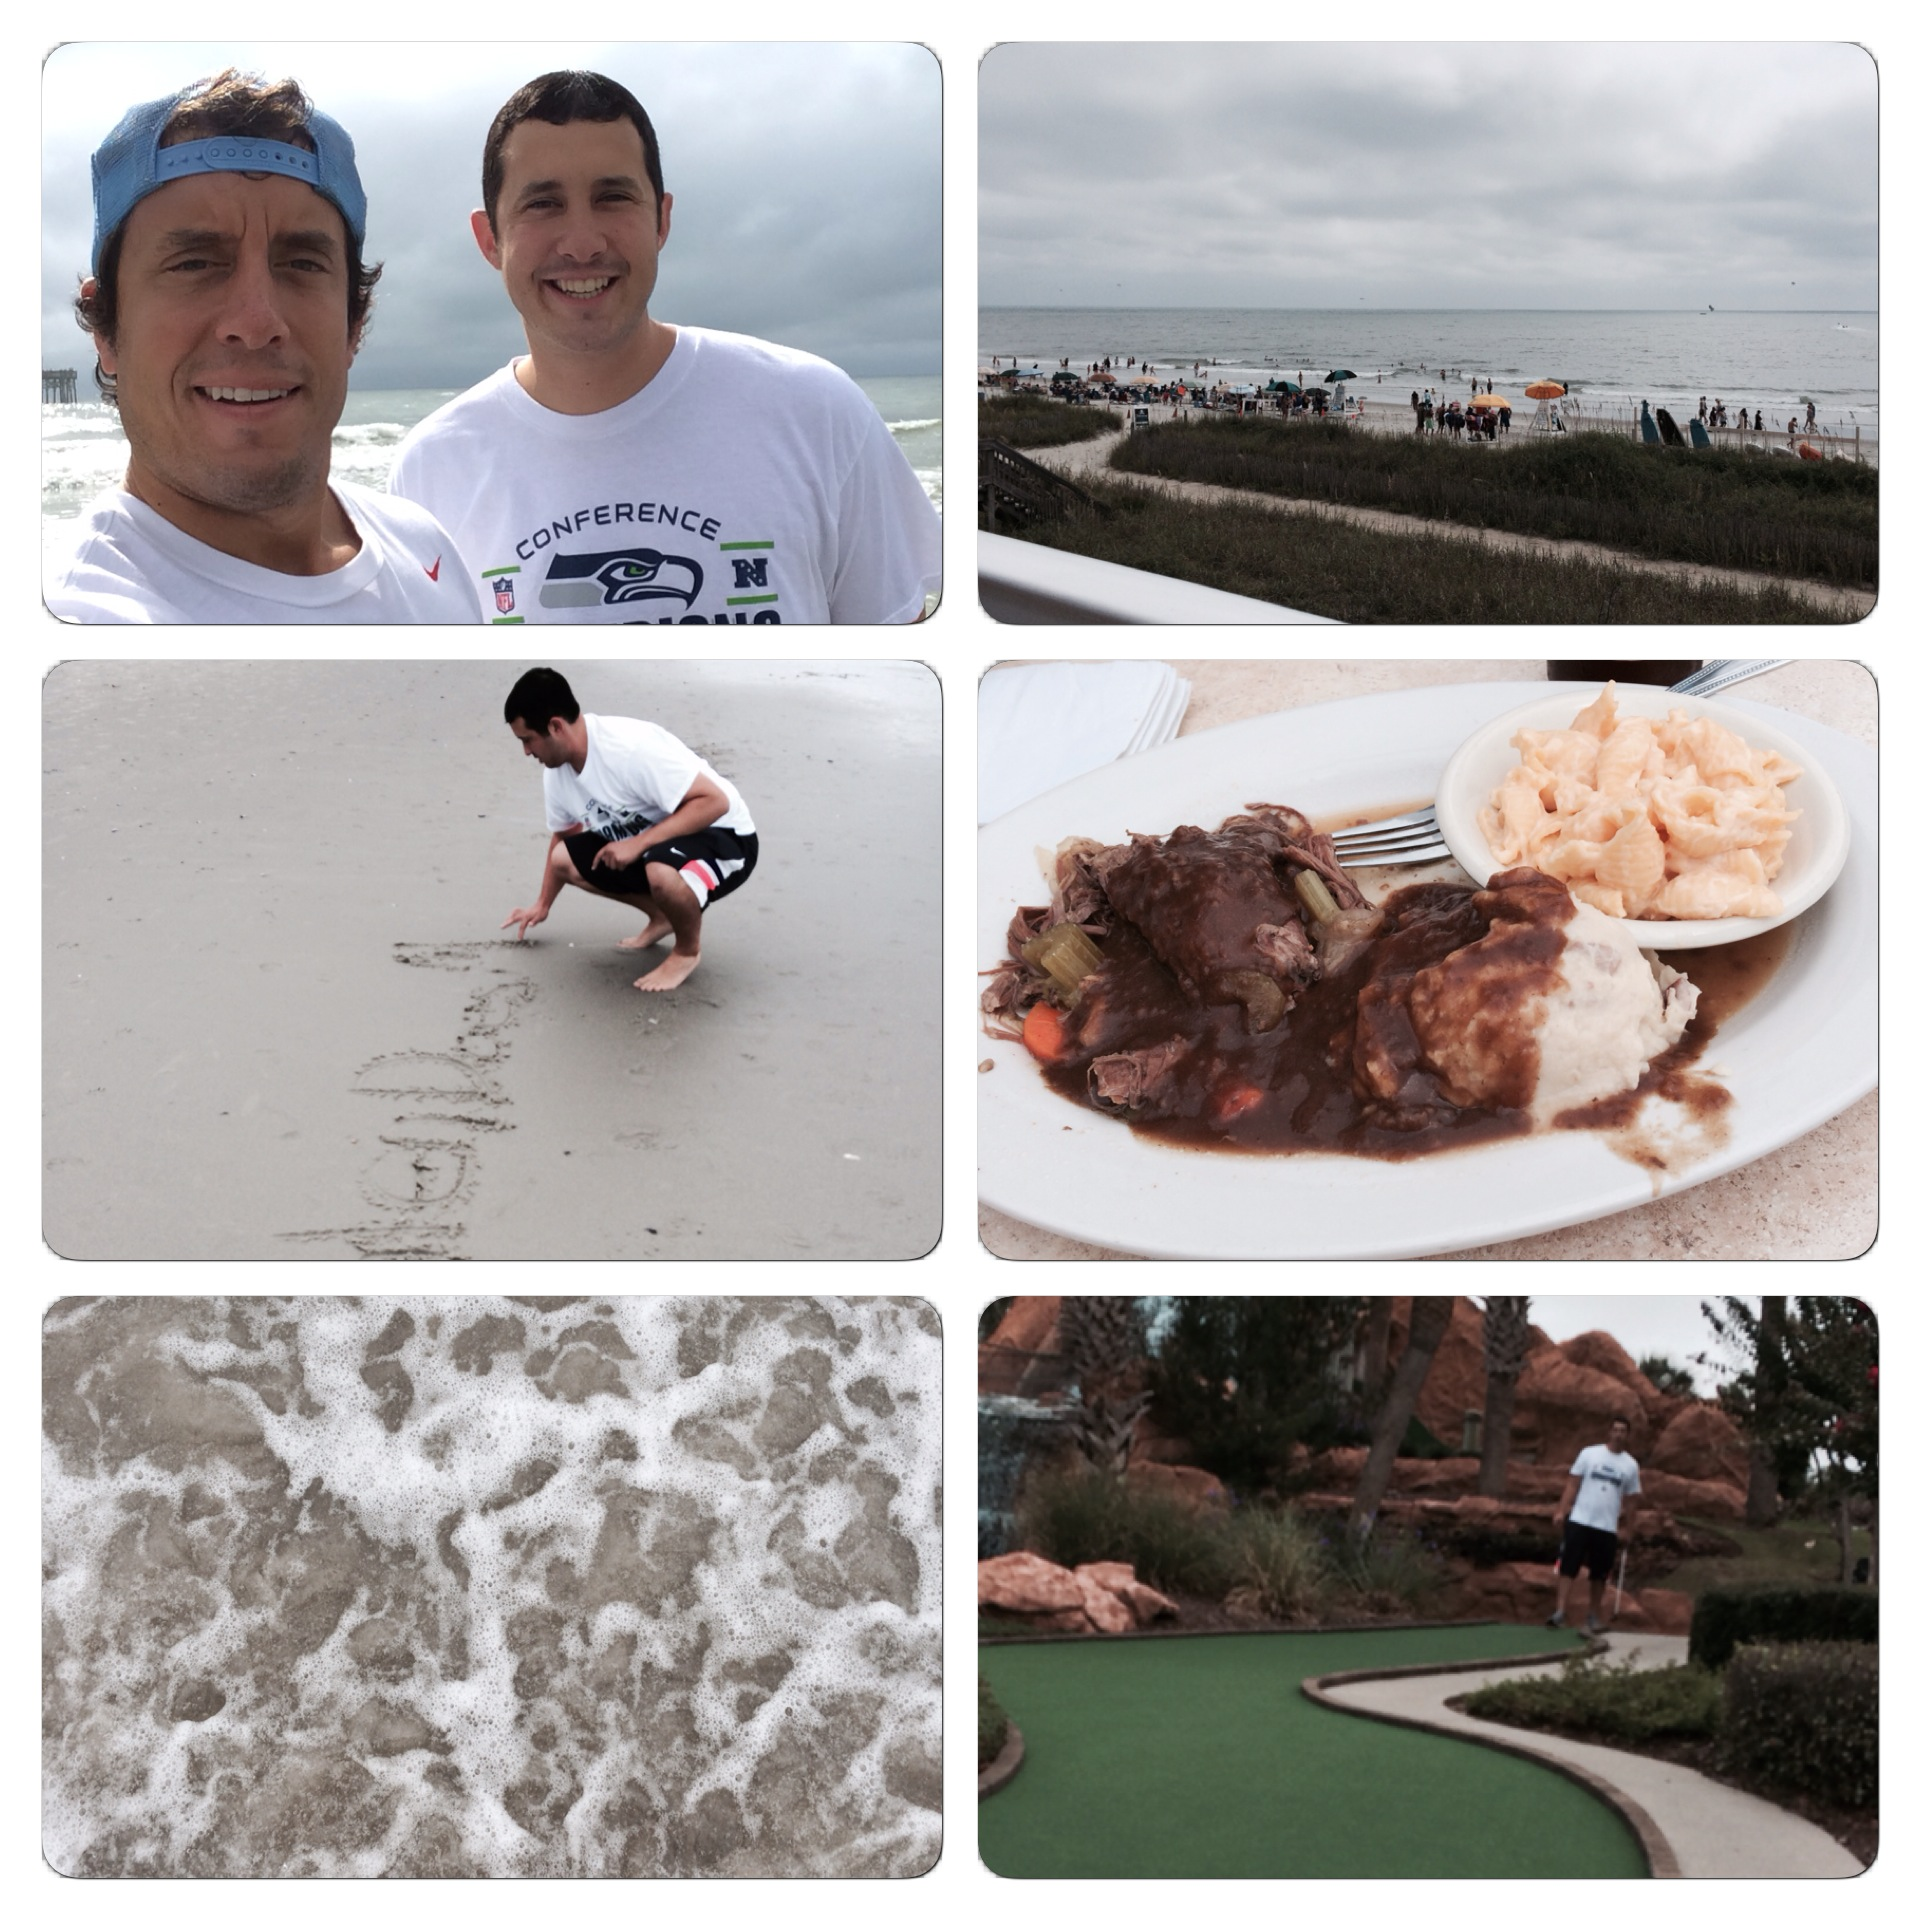 We enjoyed some time at the beach, shot some putt putt at Shipwreck, and ate yummy food at Damon's.